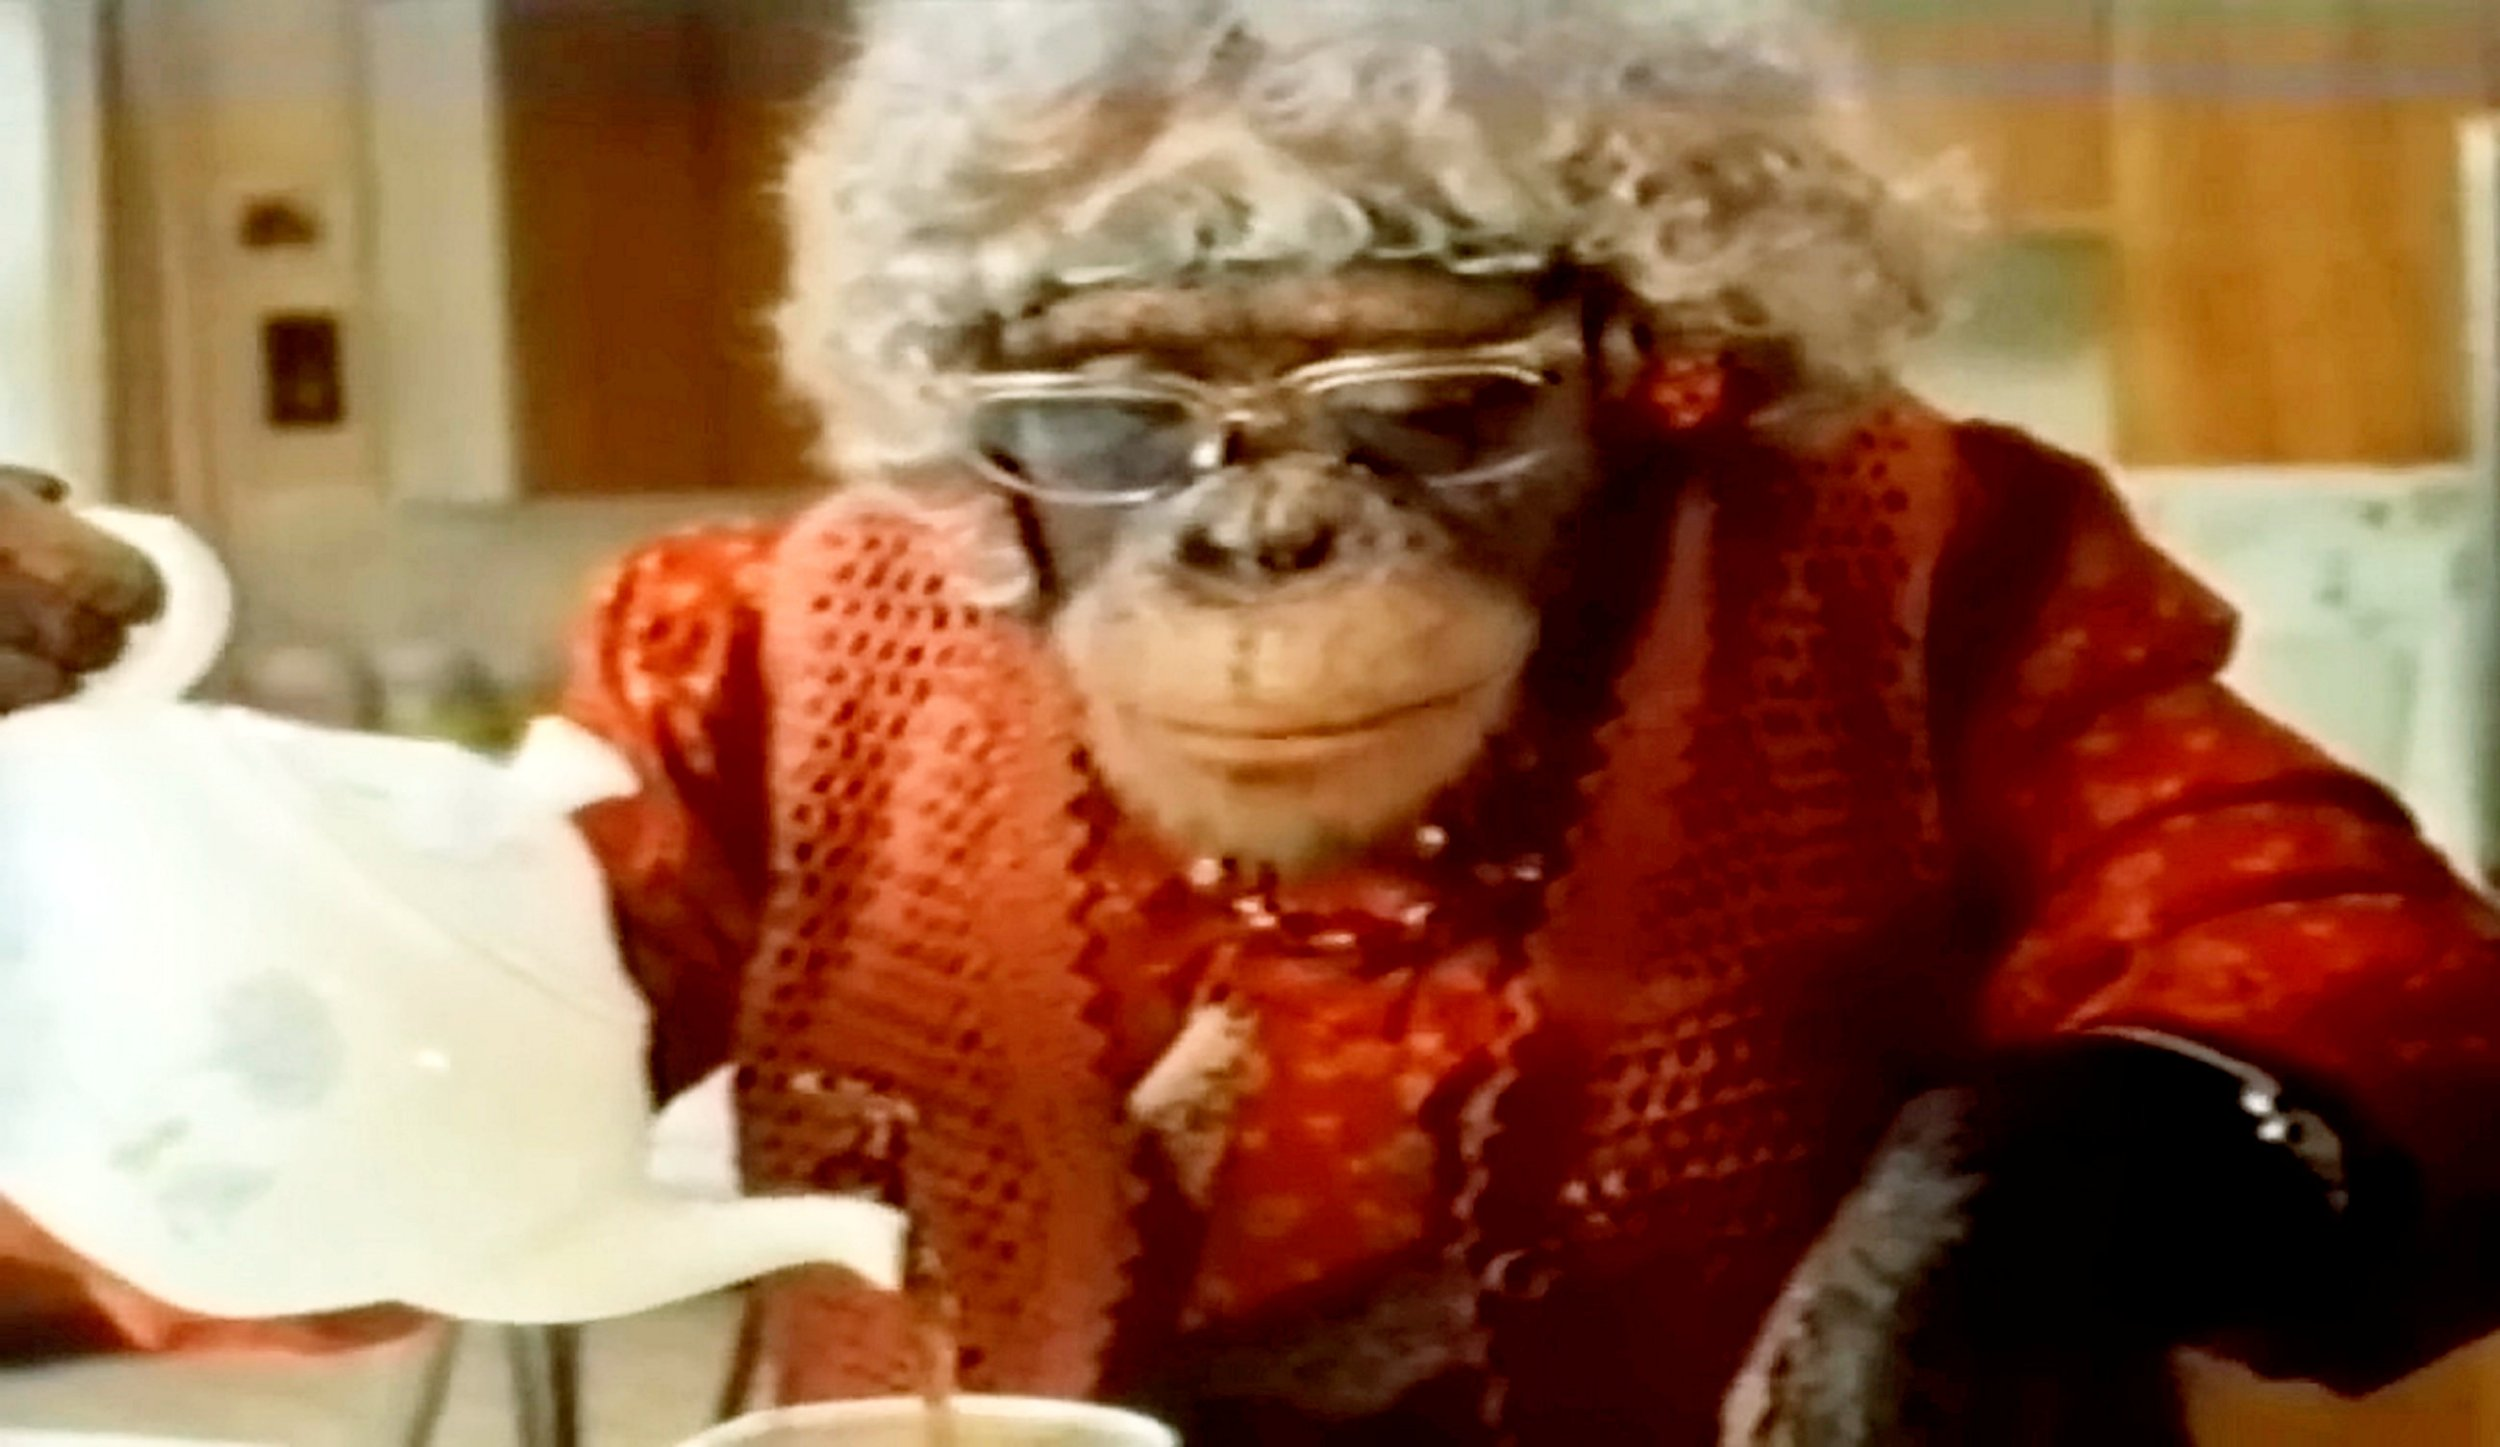 Last of the PG Tips monkeys dies after 'struggle to learn how to be a chimp'